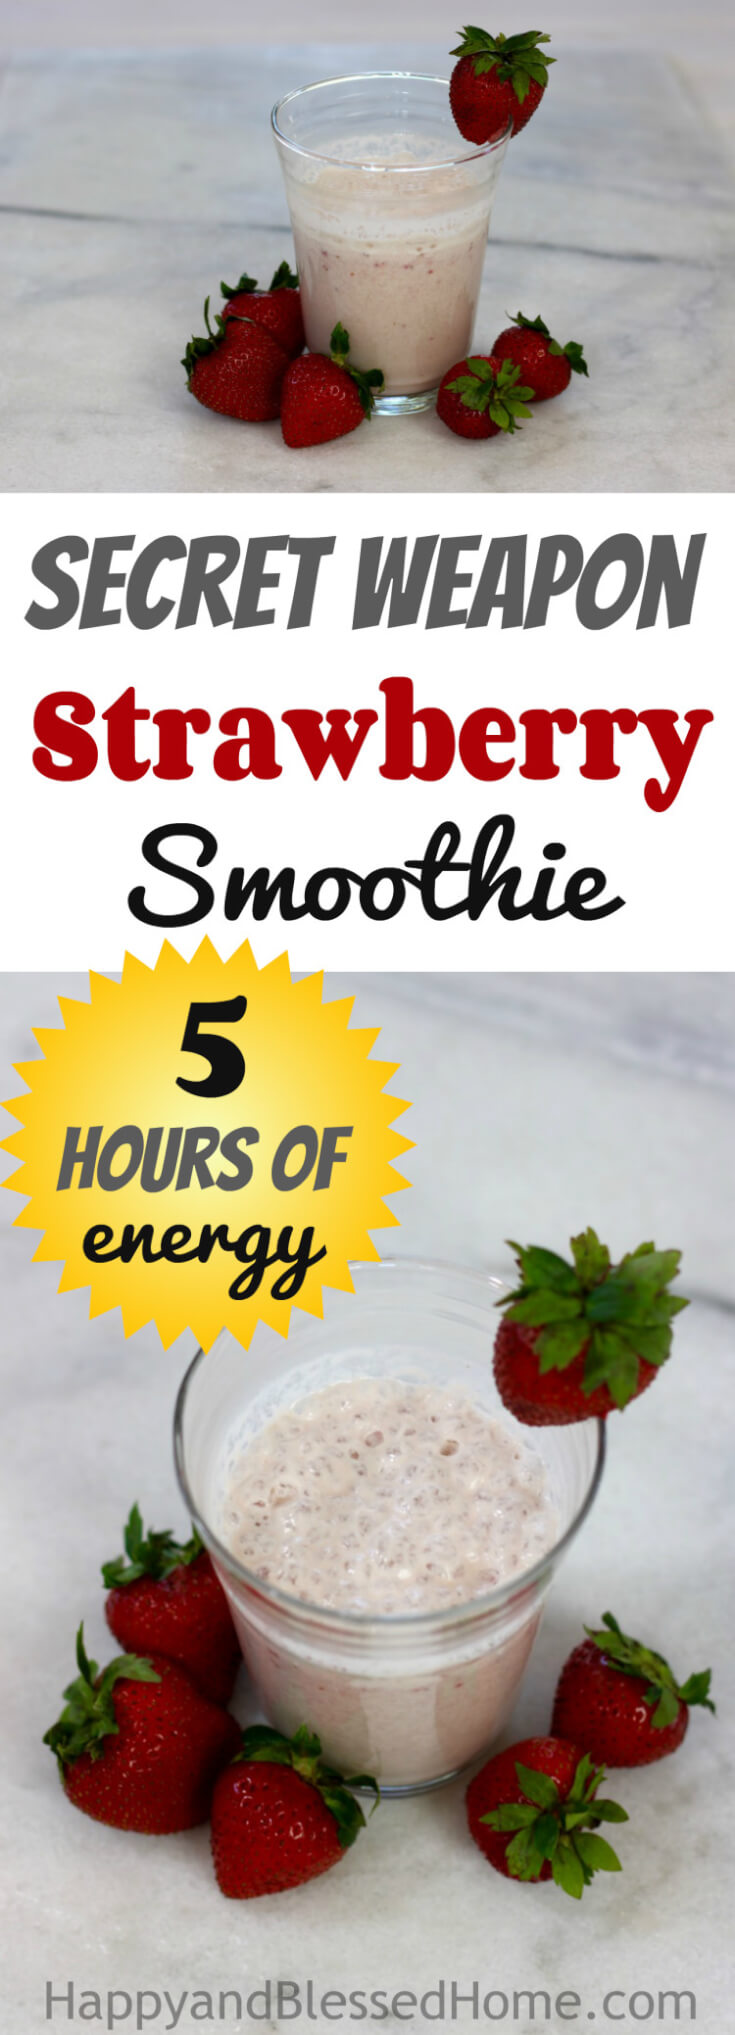 Ohhhh... Why didn't I think of this sooner - 5 Hours of Energy Strawberry Smoothie